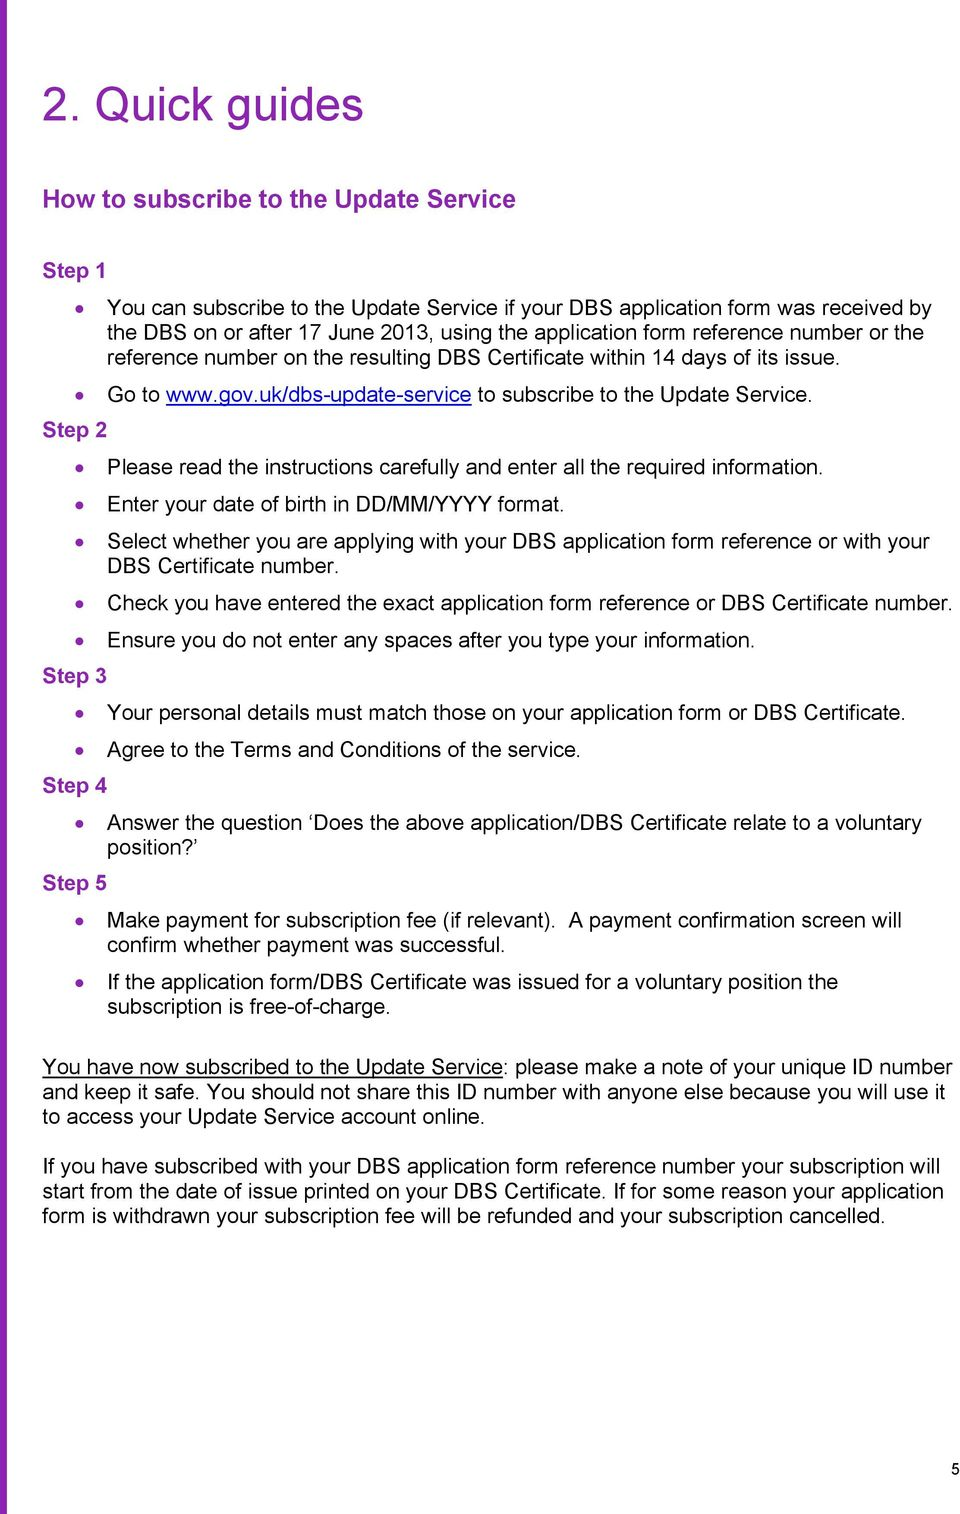 uk/dbs-update-service to subscribe to the Update Service. Please read the instructions carefully and enter all the required information. Enter your date of birth in DD/MM/YYYY format.